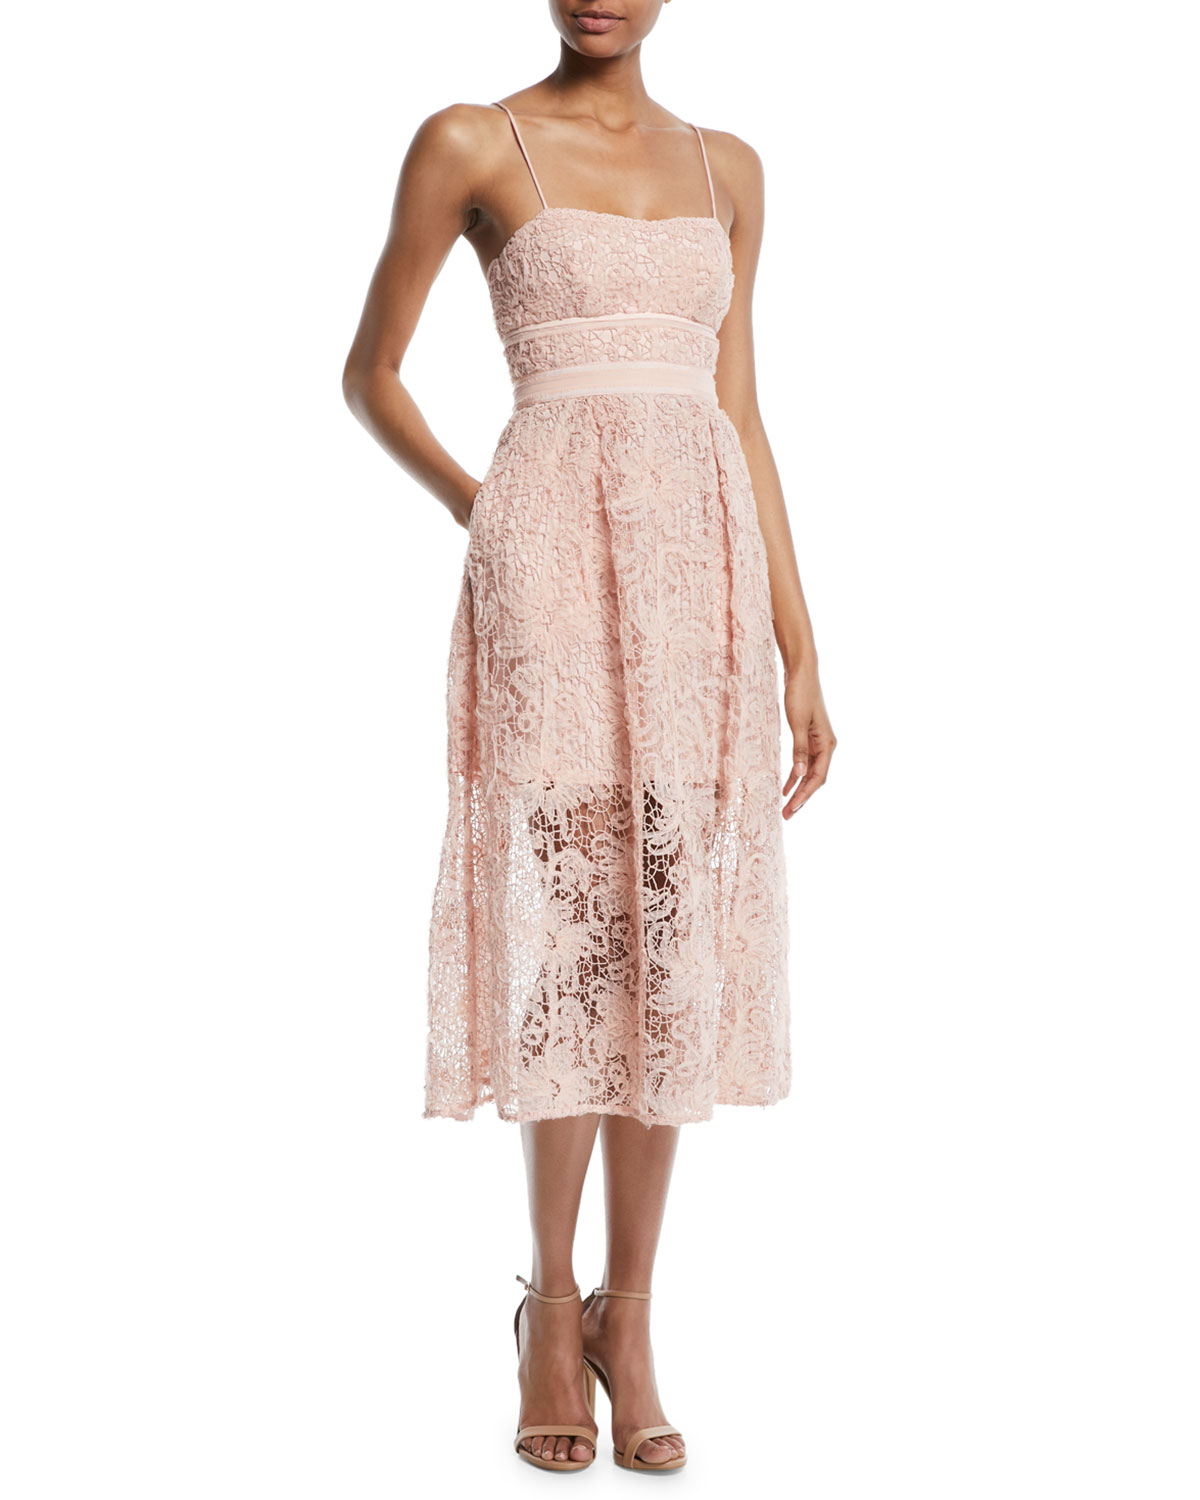 7c92e8f71016 Self-Portrait Floral Lace Sleeveless Midi Cocktail Dress